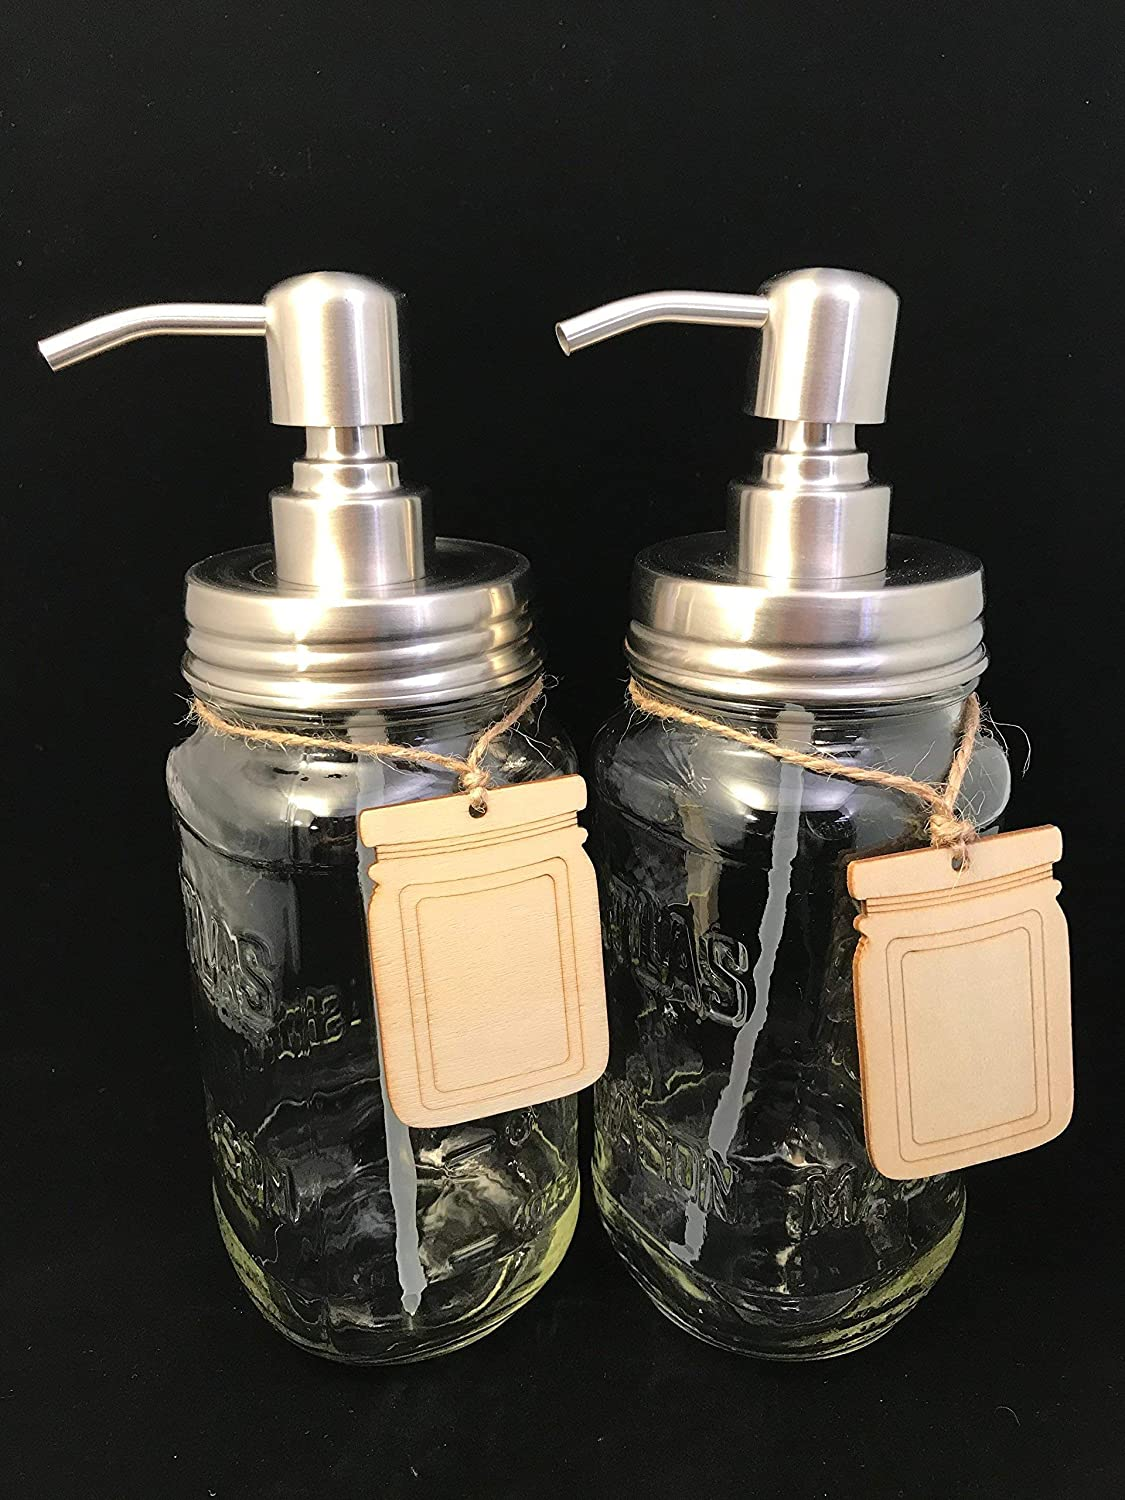 d7fa94bbe037 Set of 2 Glass Dispensers for Soap or Lotion with Wooden Tags Reclaimed  Bottle Mason Jars